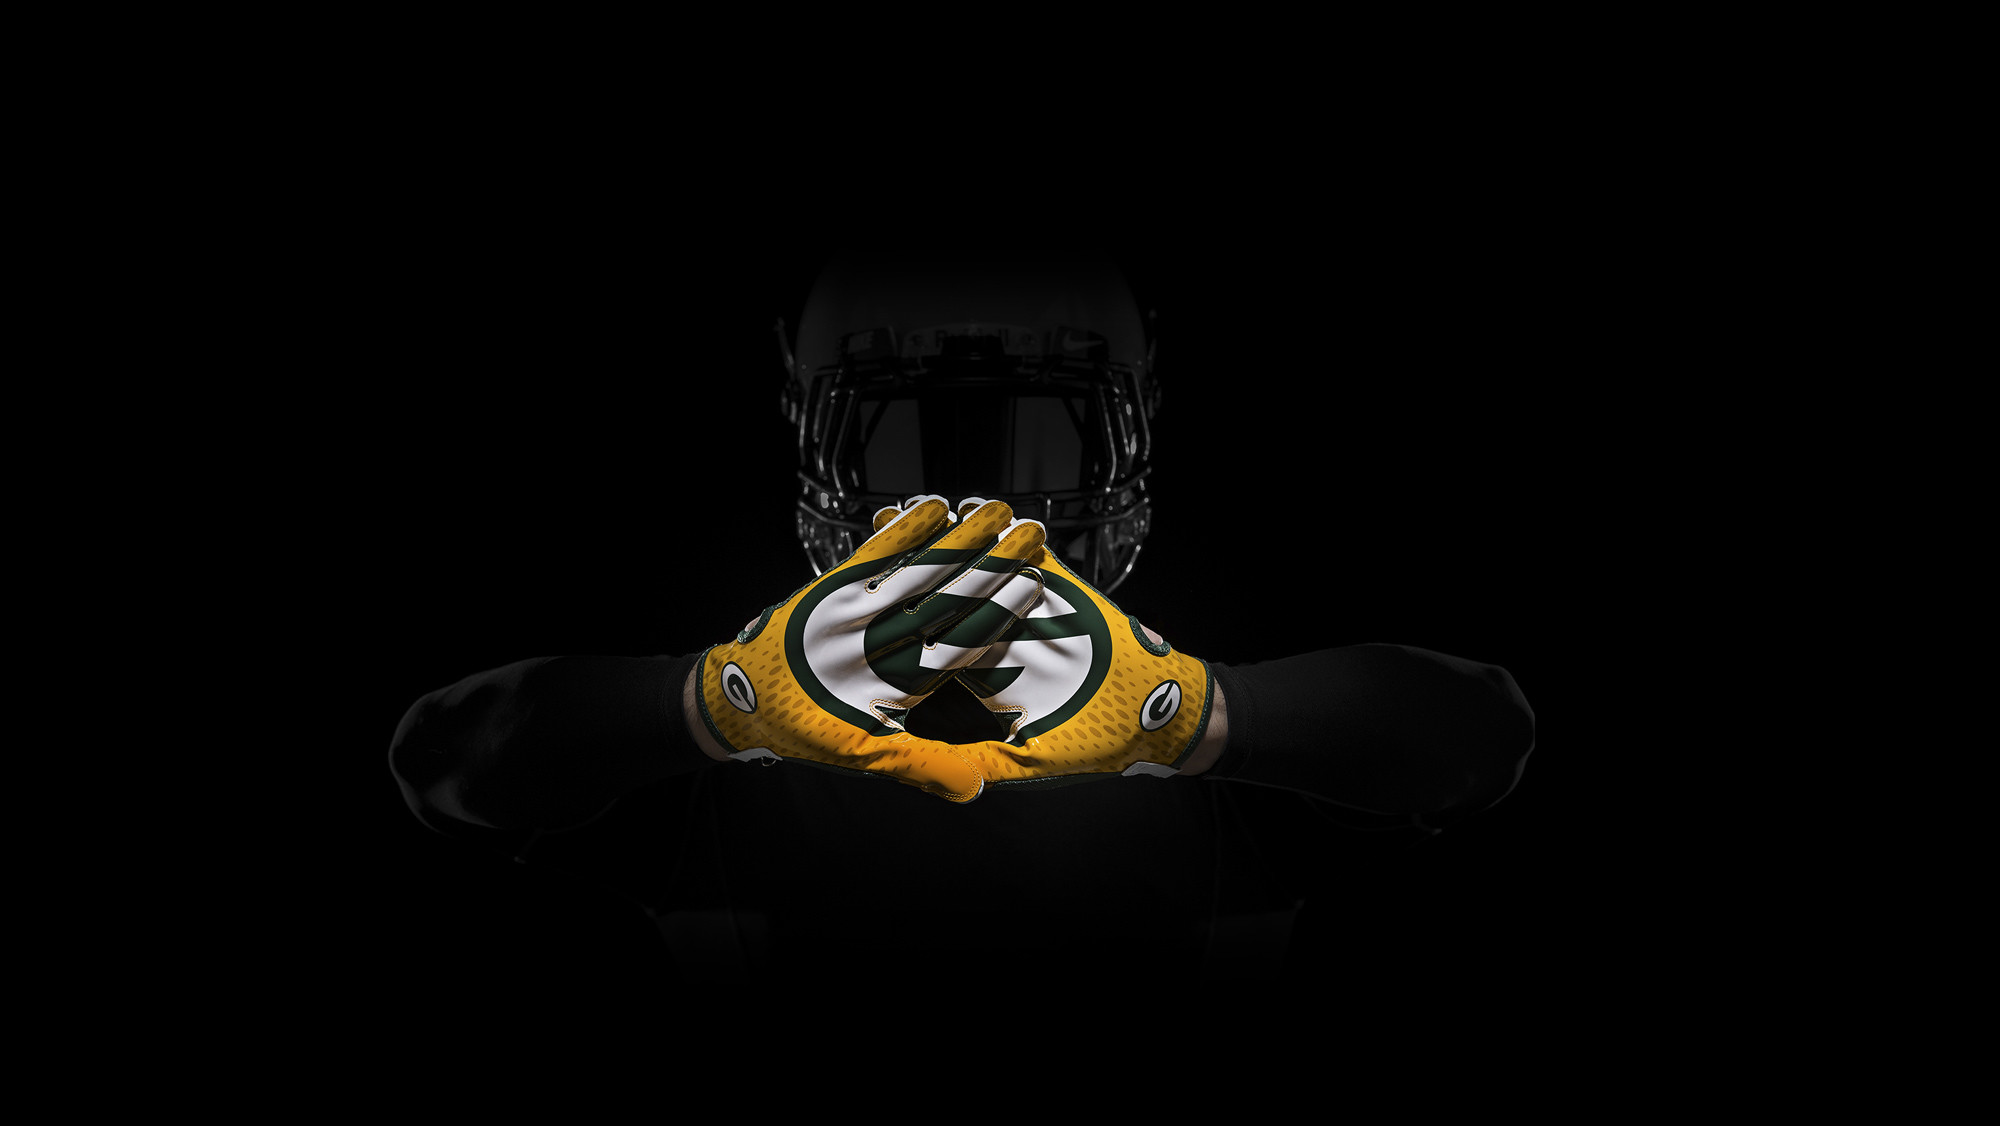 Green Bay Packer Wallpaper: Green Bay Packers Images Wallpaper Logo (64+ Images